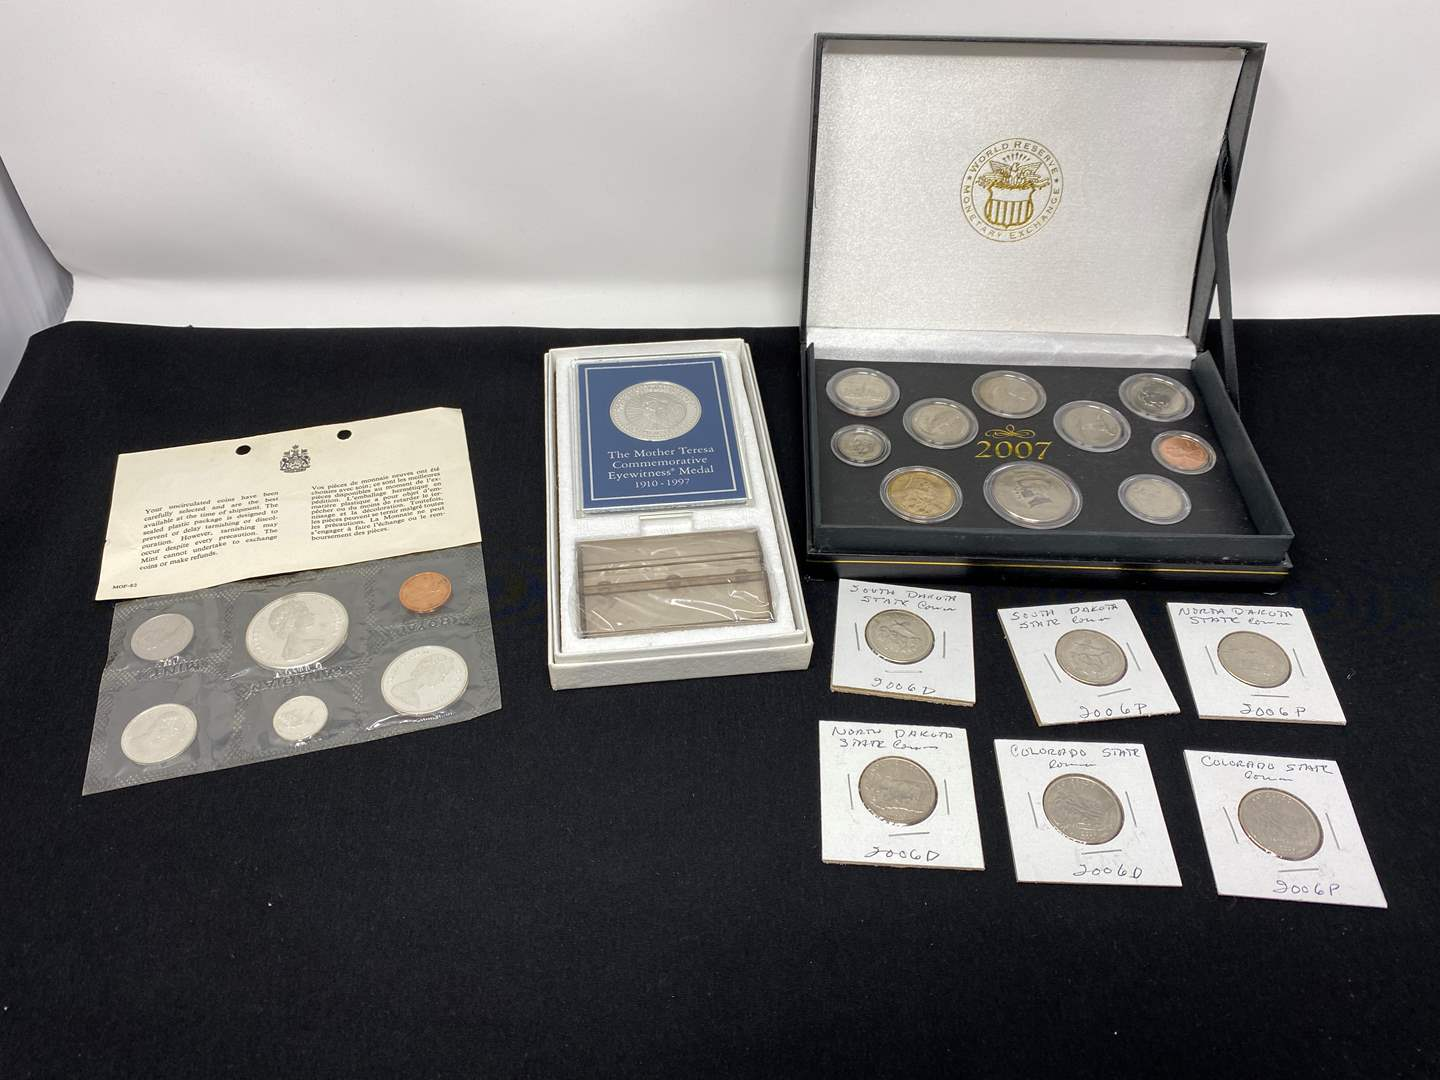 Lot # 205 - Uncirculated Foreign Coins, Uncirculated 2007 Coins, Uncirculated 2006 State Quarters & Mother Teresa .999 Silver Co (main image)